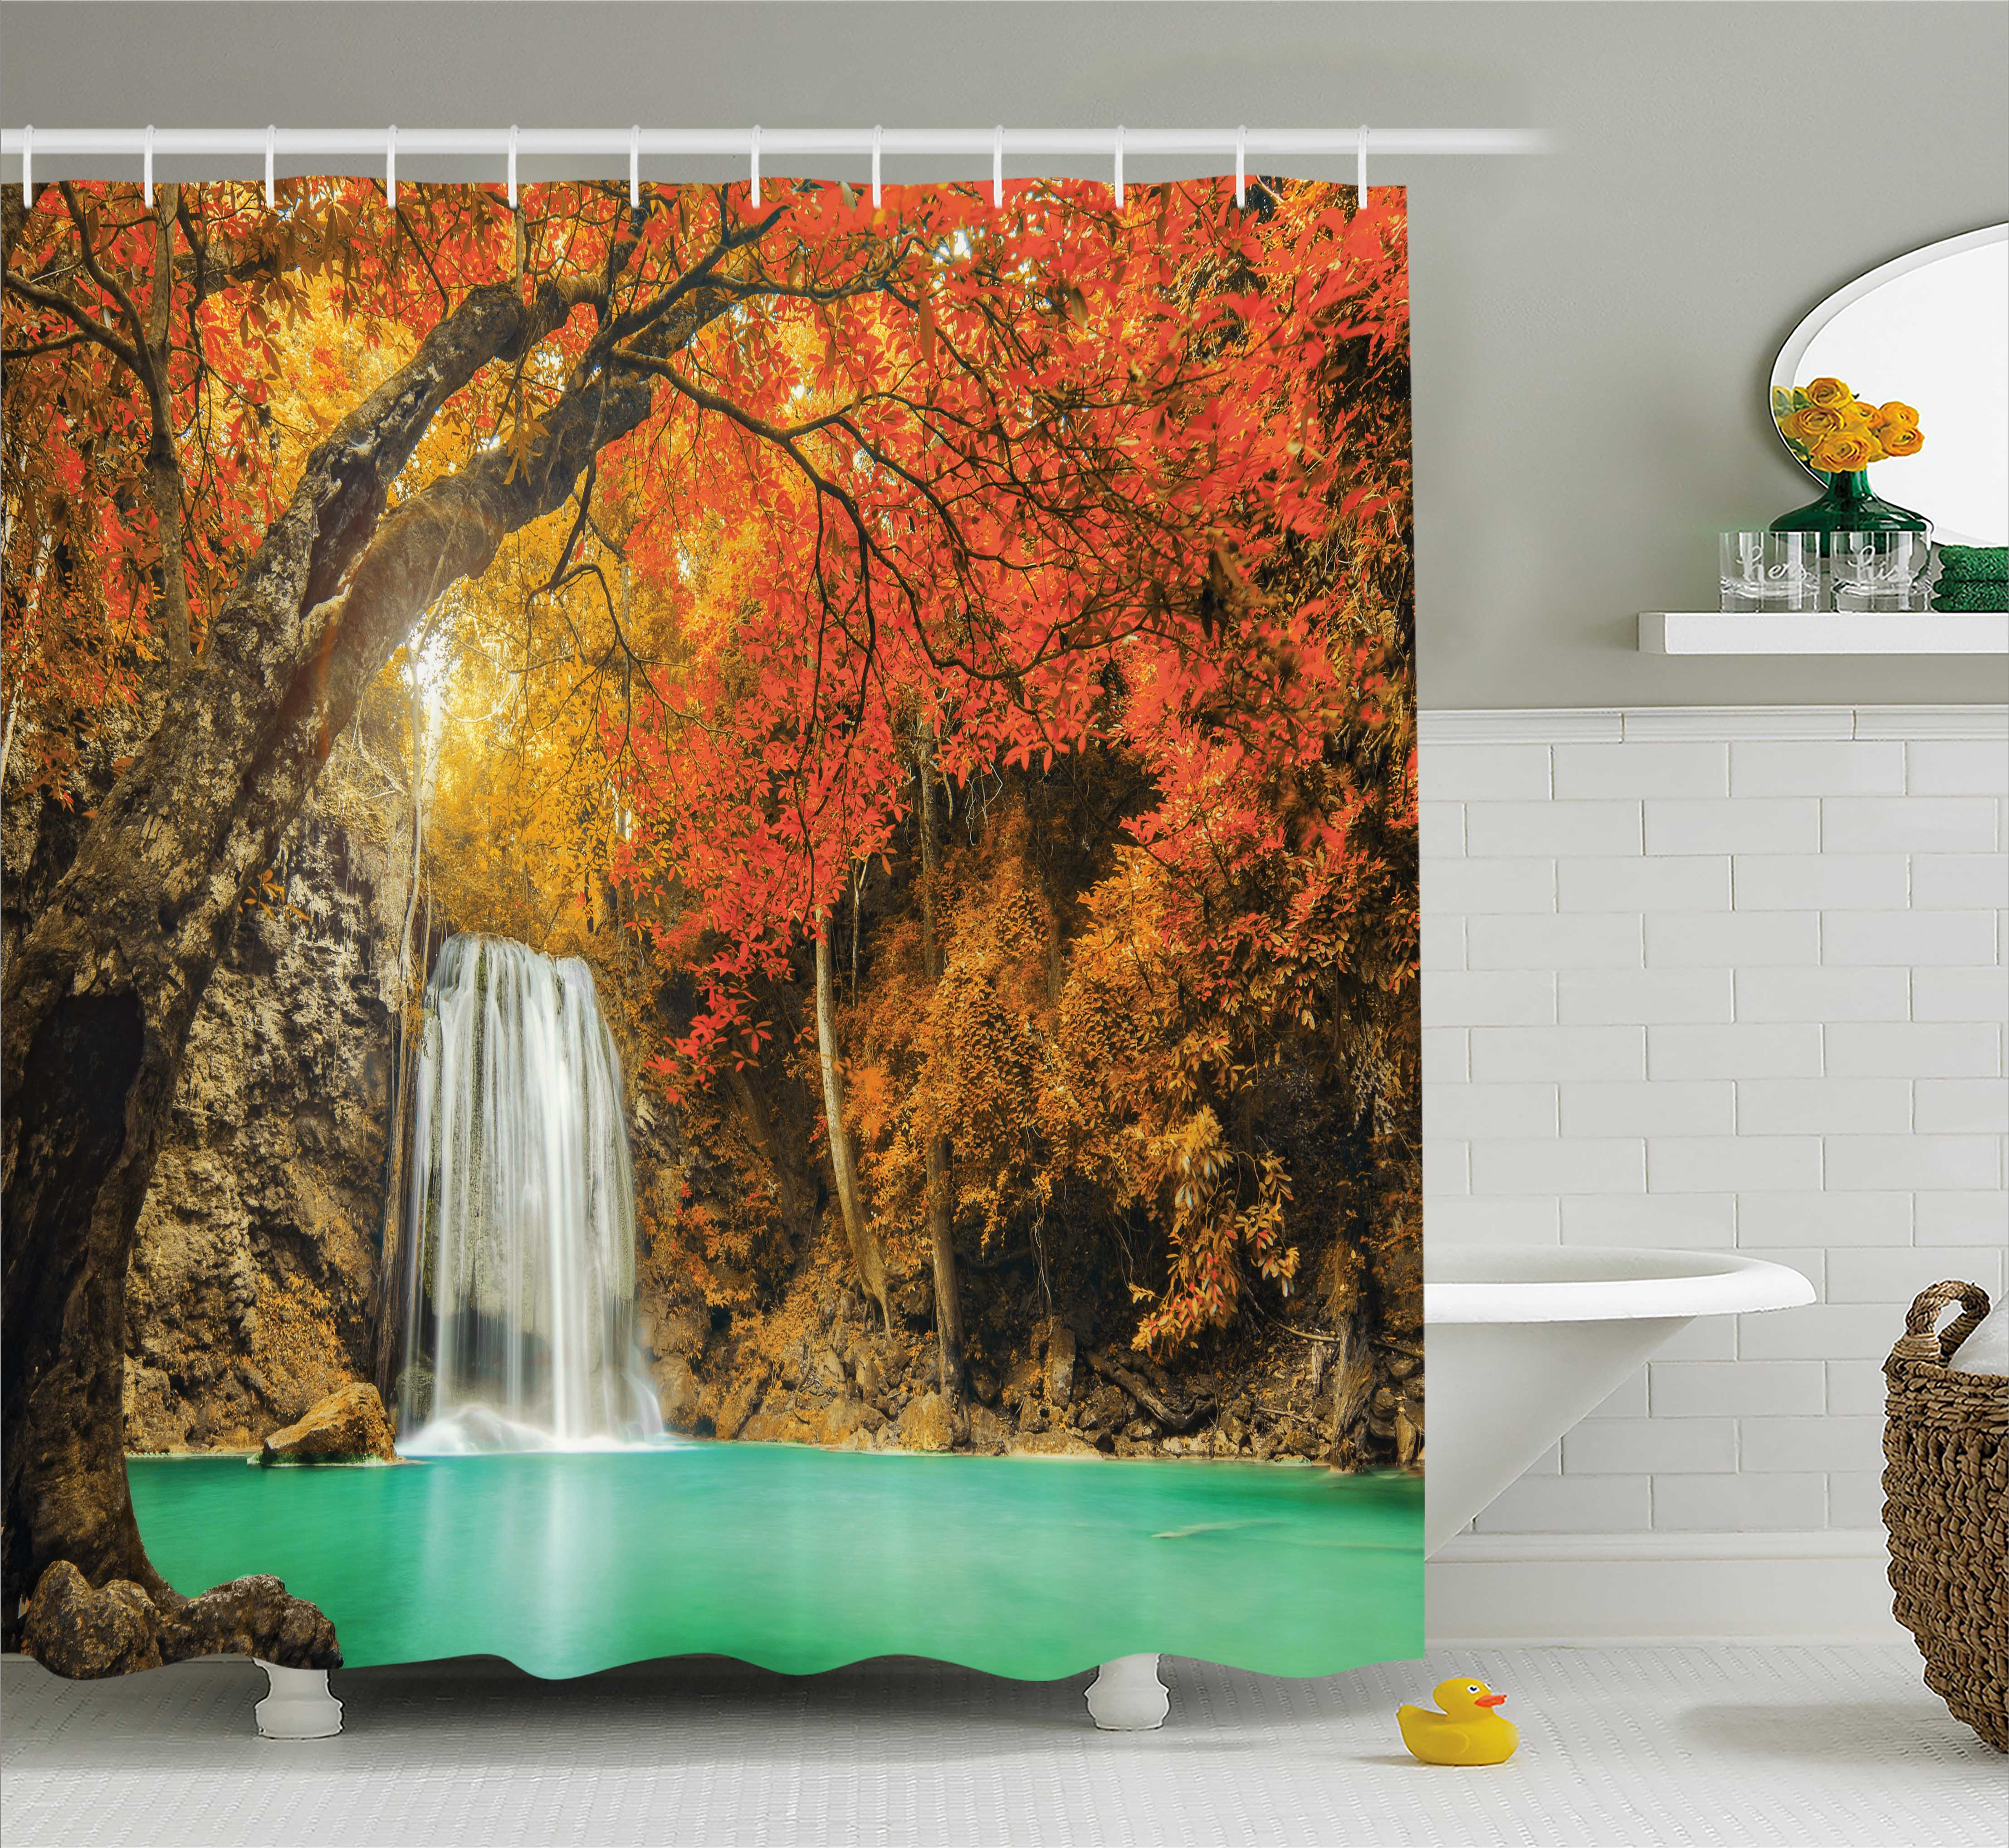 Farm House Decor Shower Curtain, Majestic Waterfall Cascade in Forest Flows down Crystal Pure Habitat View, Fabric Bathroom Set with Hooks, 69W X 84L Inches Extra Long, Orange Blue, by Ambesonne